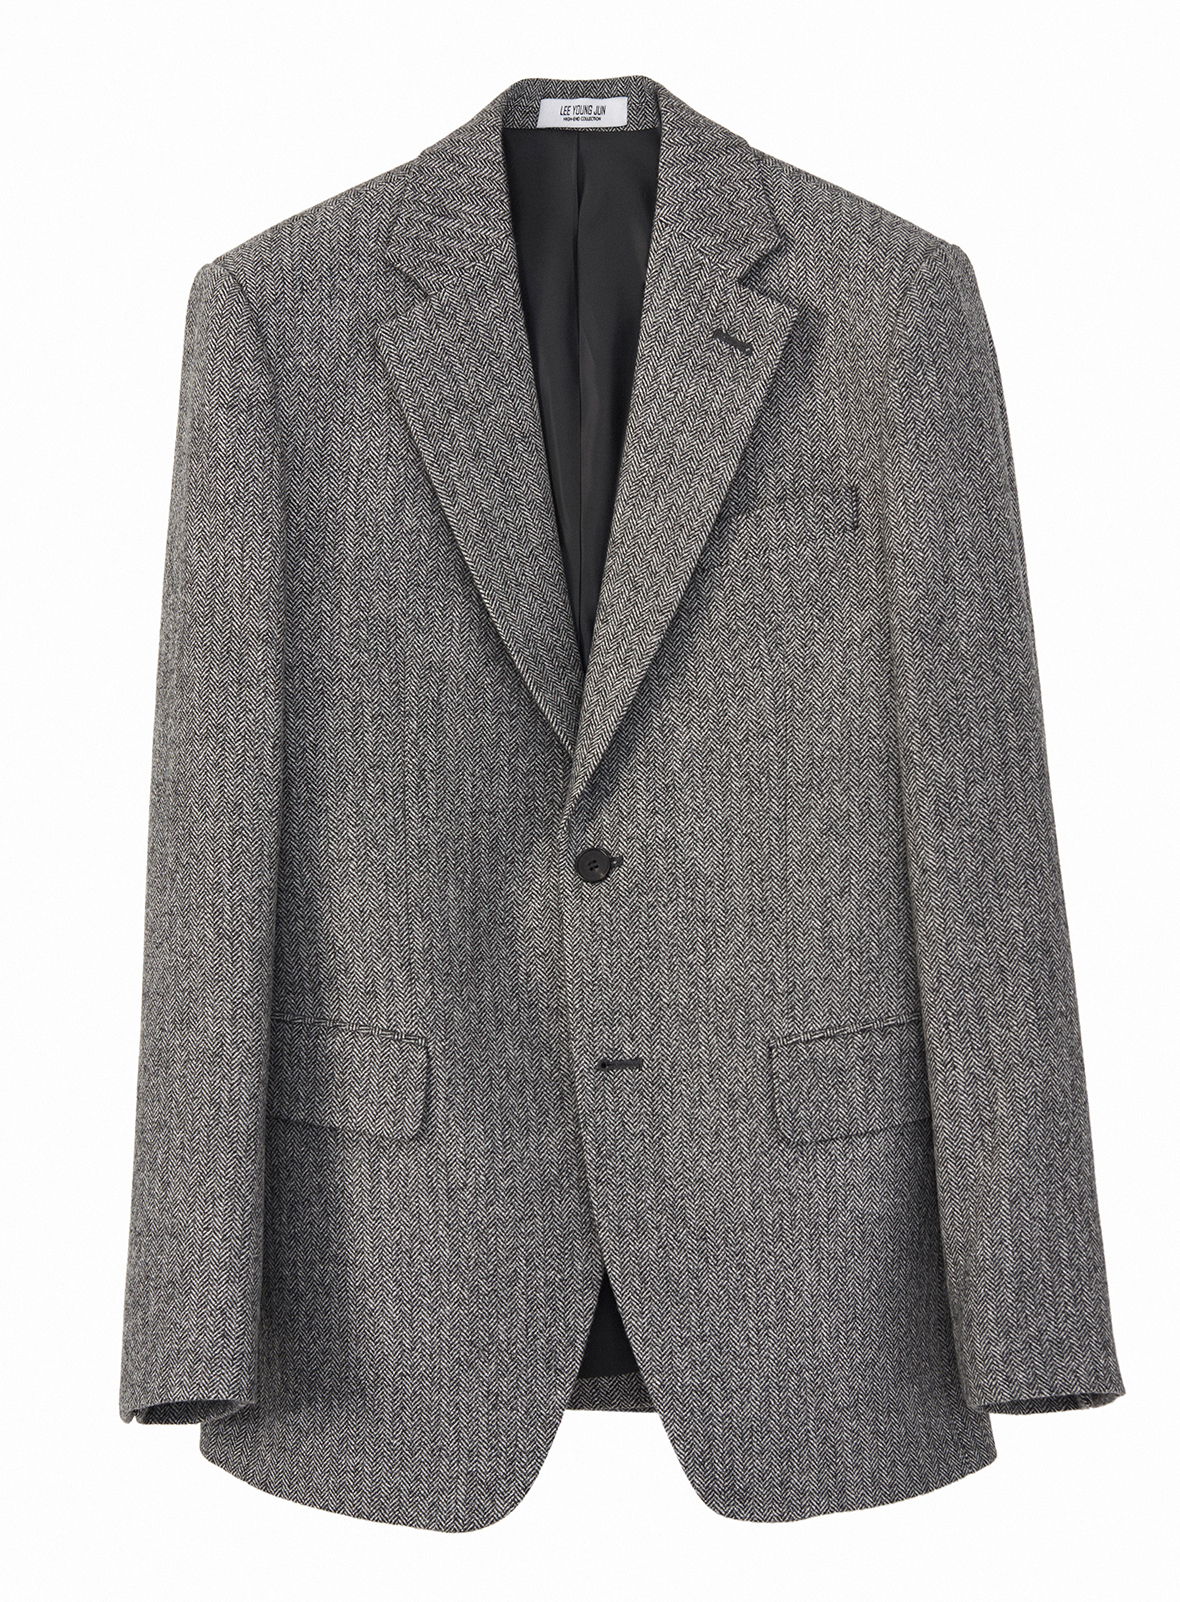 HAND-MADE™ HERRINGBONE SLIM-FIT JACKET( WOOL 100%)(JK-068)